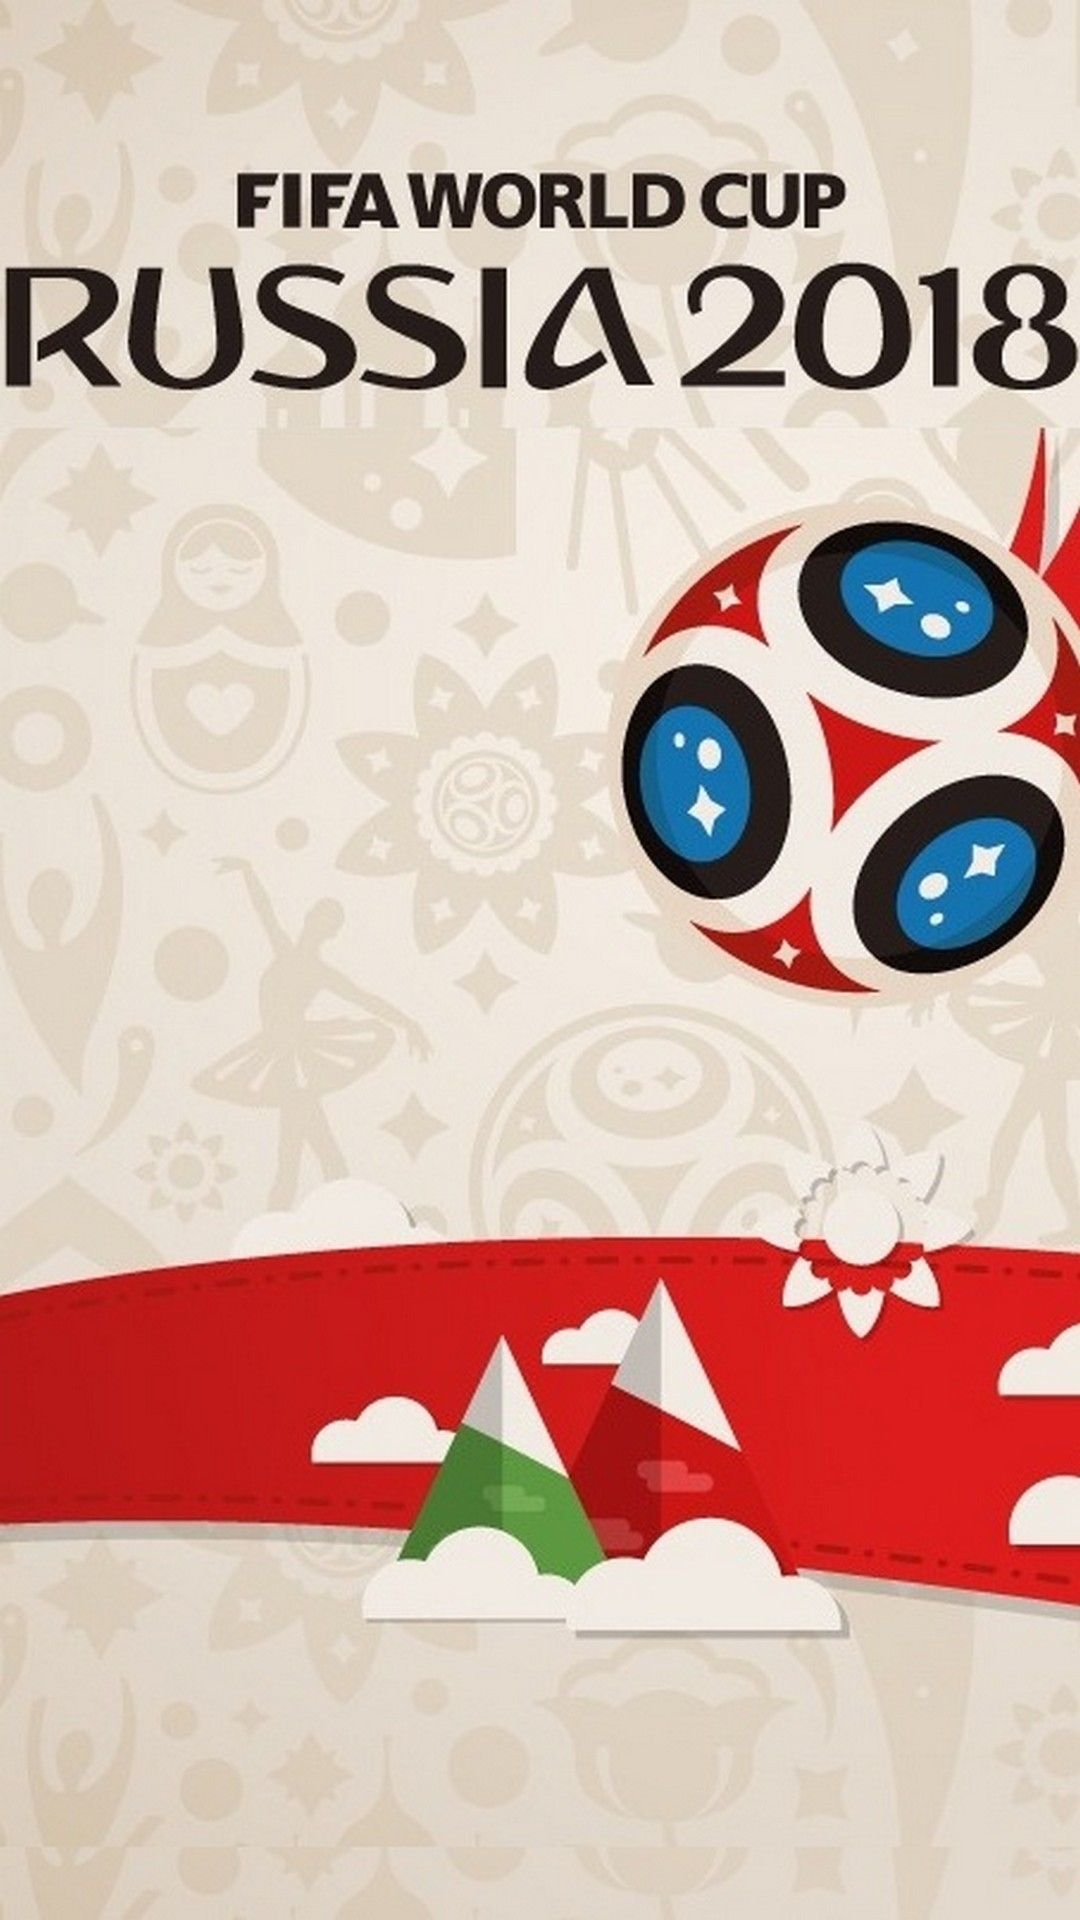 Wallpaper 2018 World Cup Iphone Best Iphone Wallpaper Iphone Wallpaper Best Iphone Wallpapers Wallpaper